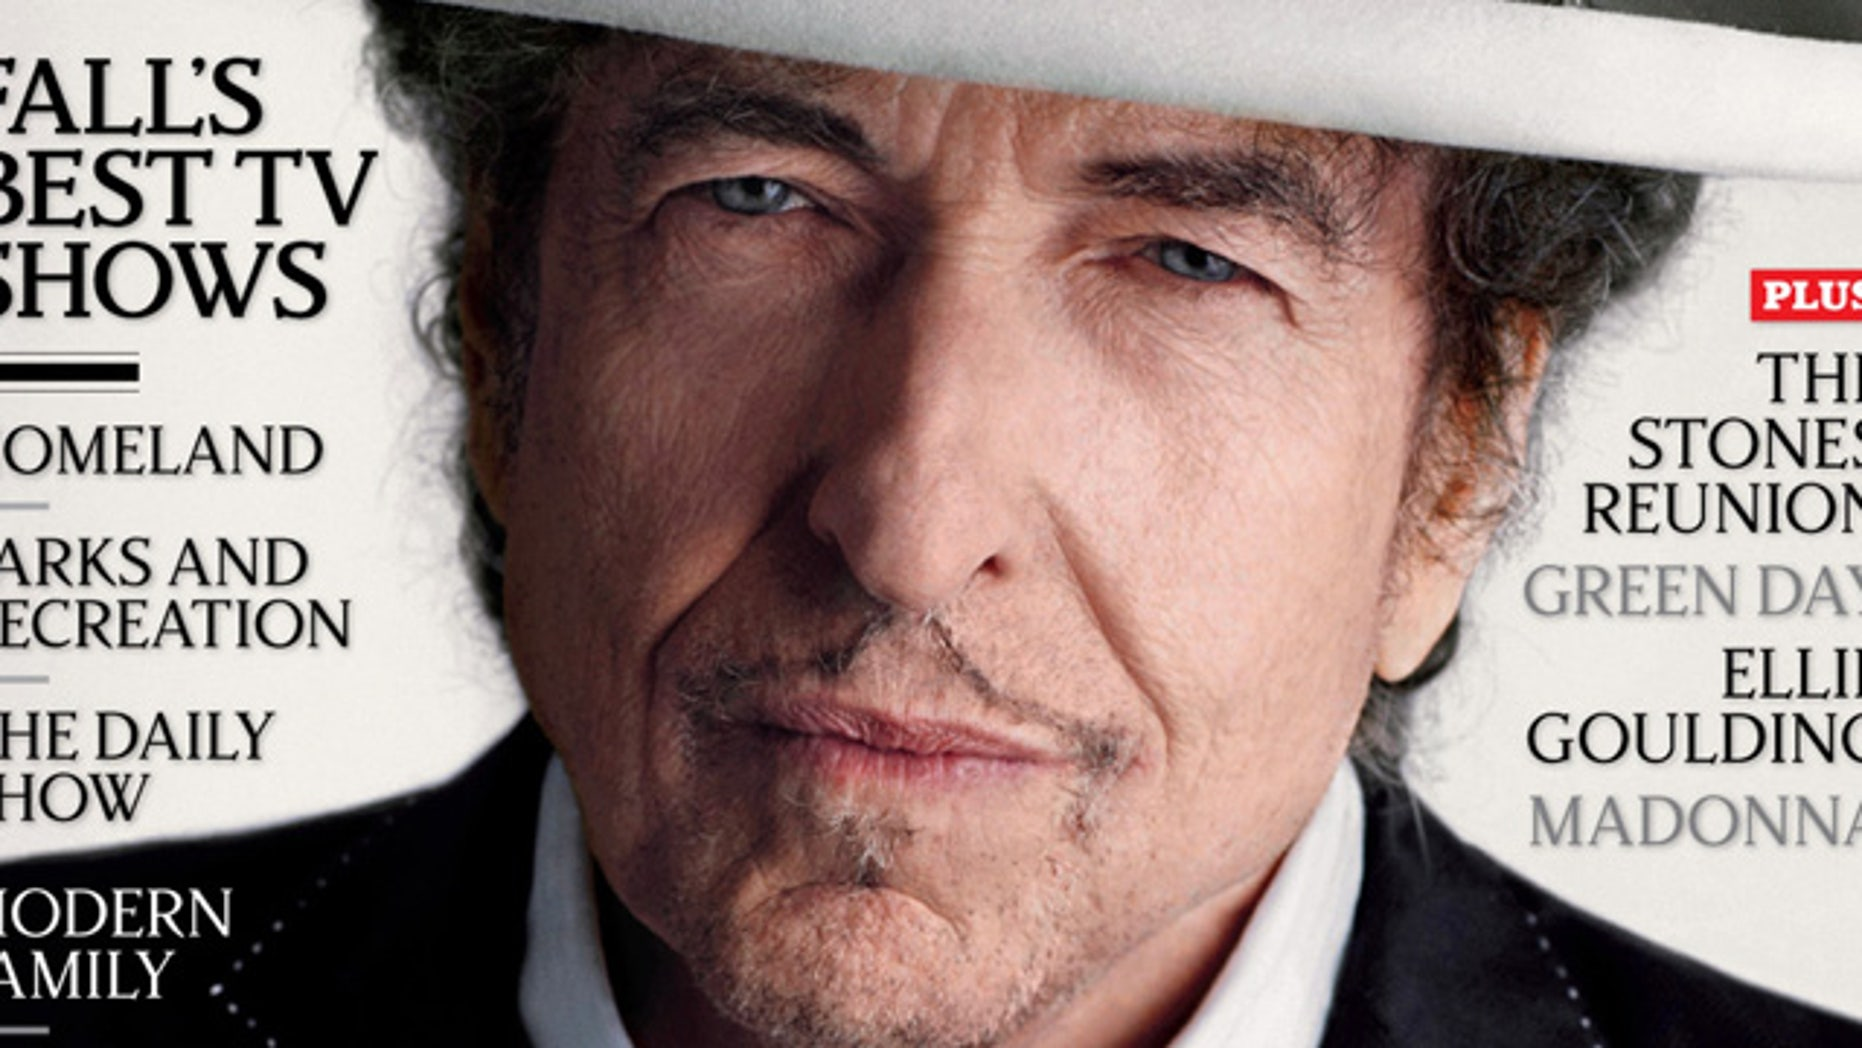 Bob Dylan appears on the cover of the Oct. 2012 issue of Rolling Stone.